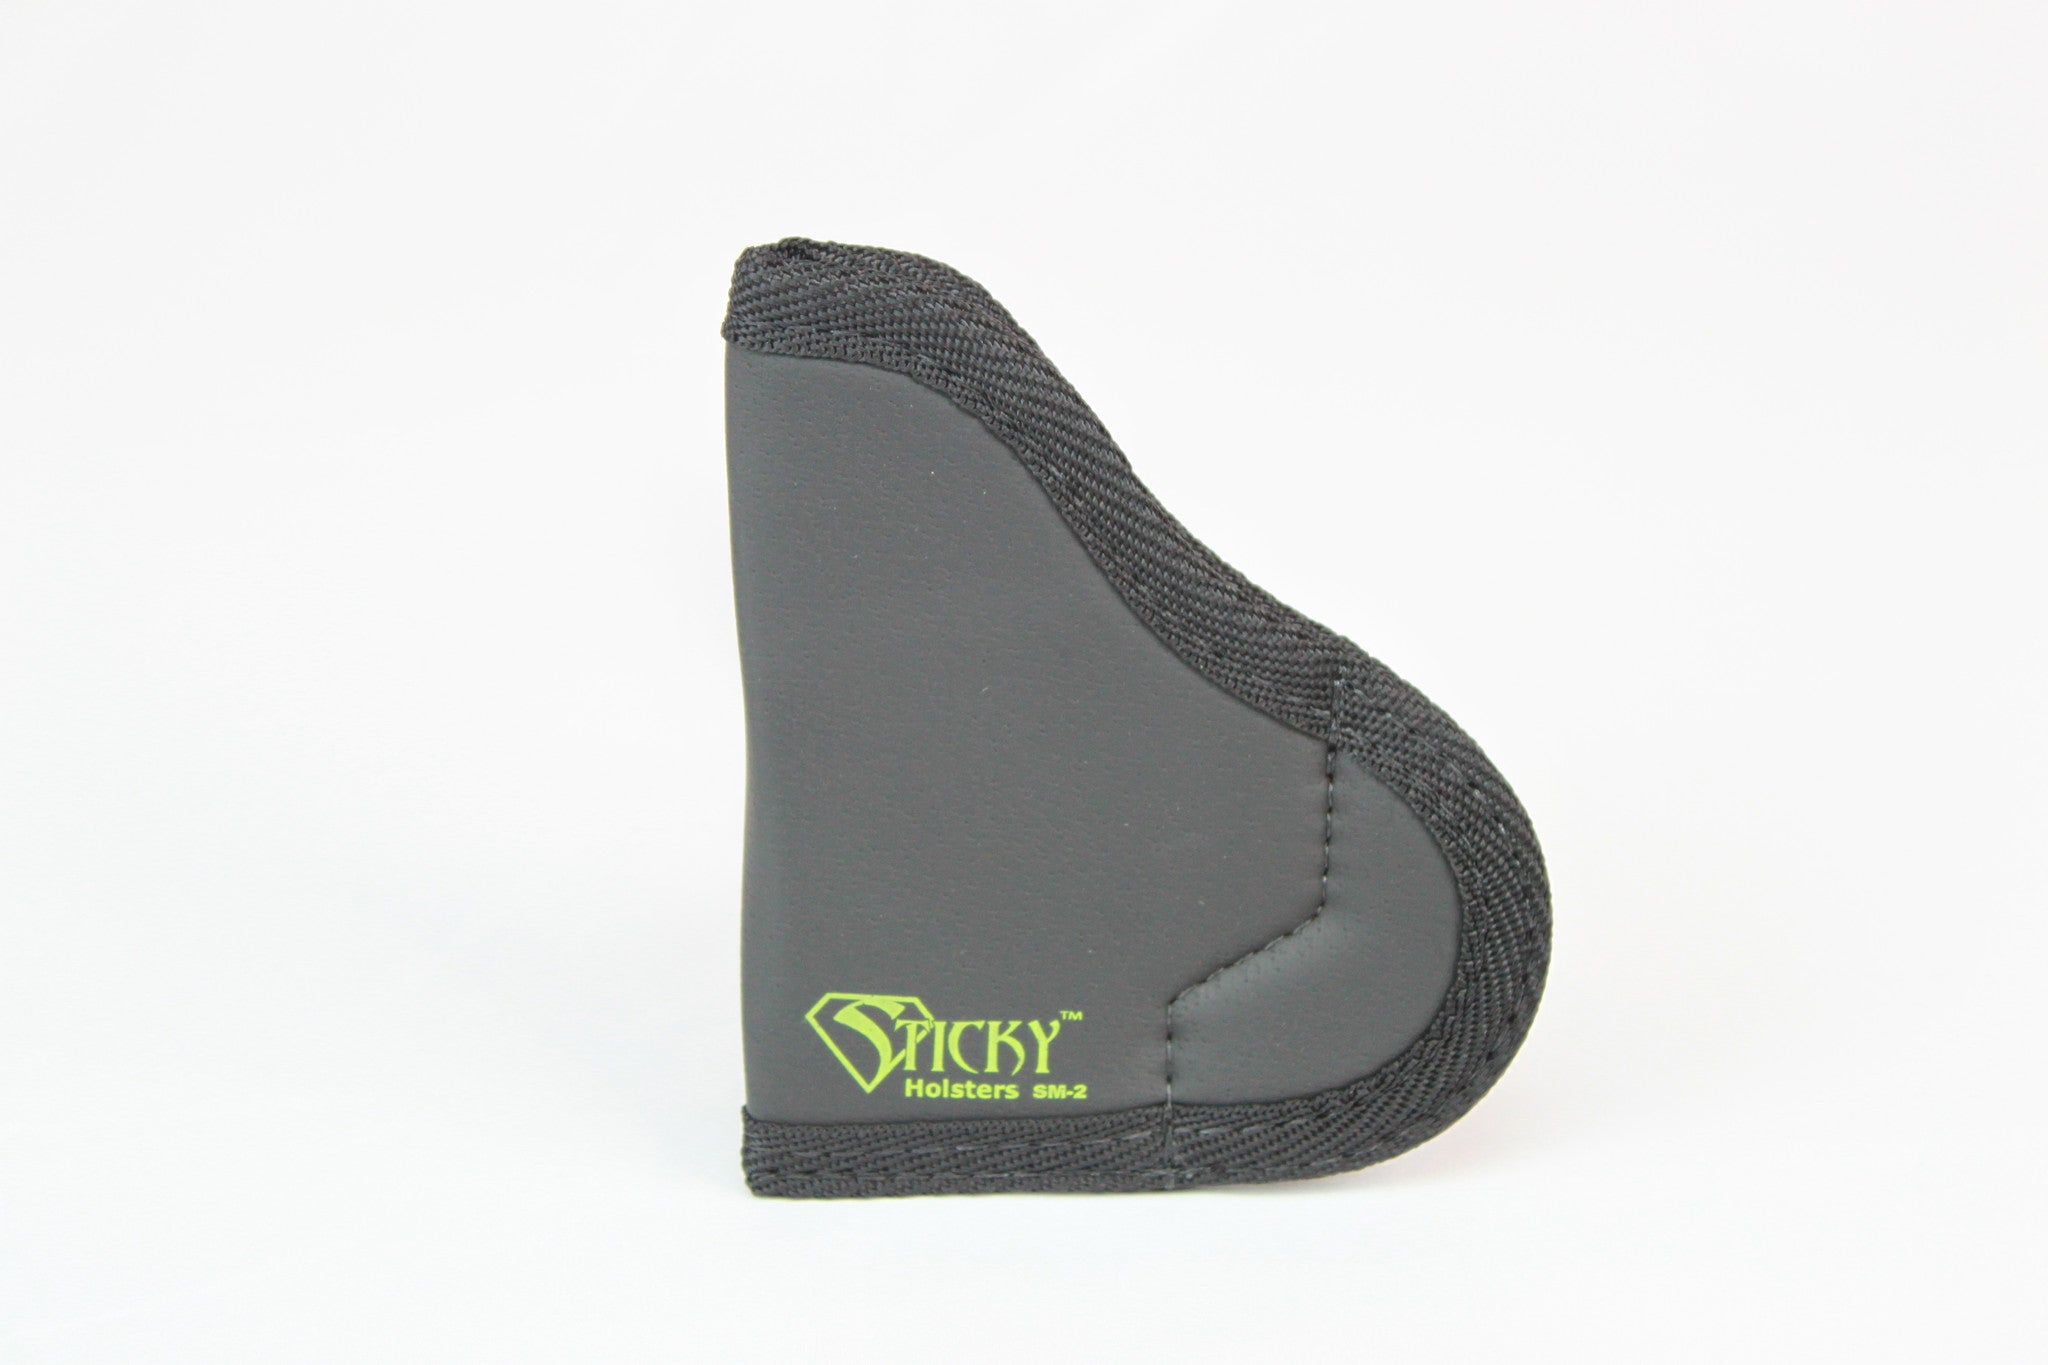 SM-2 Small Sticky Holster